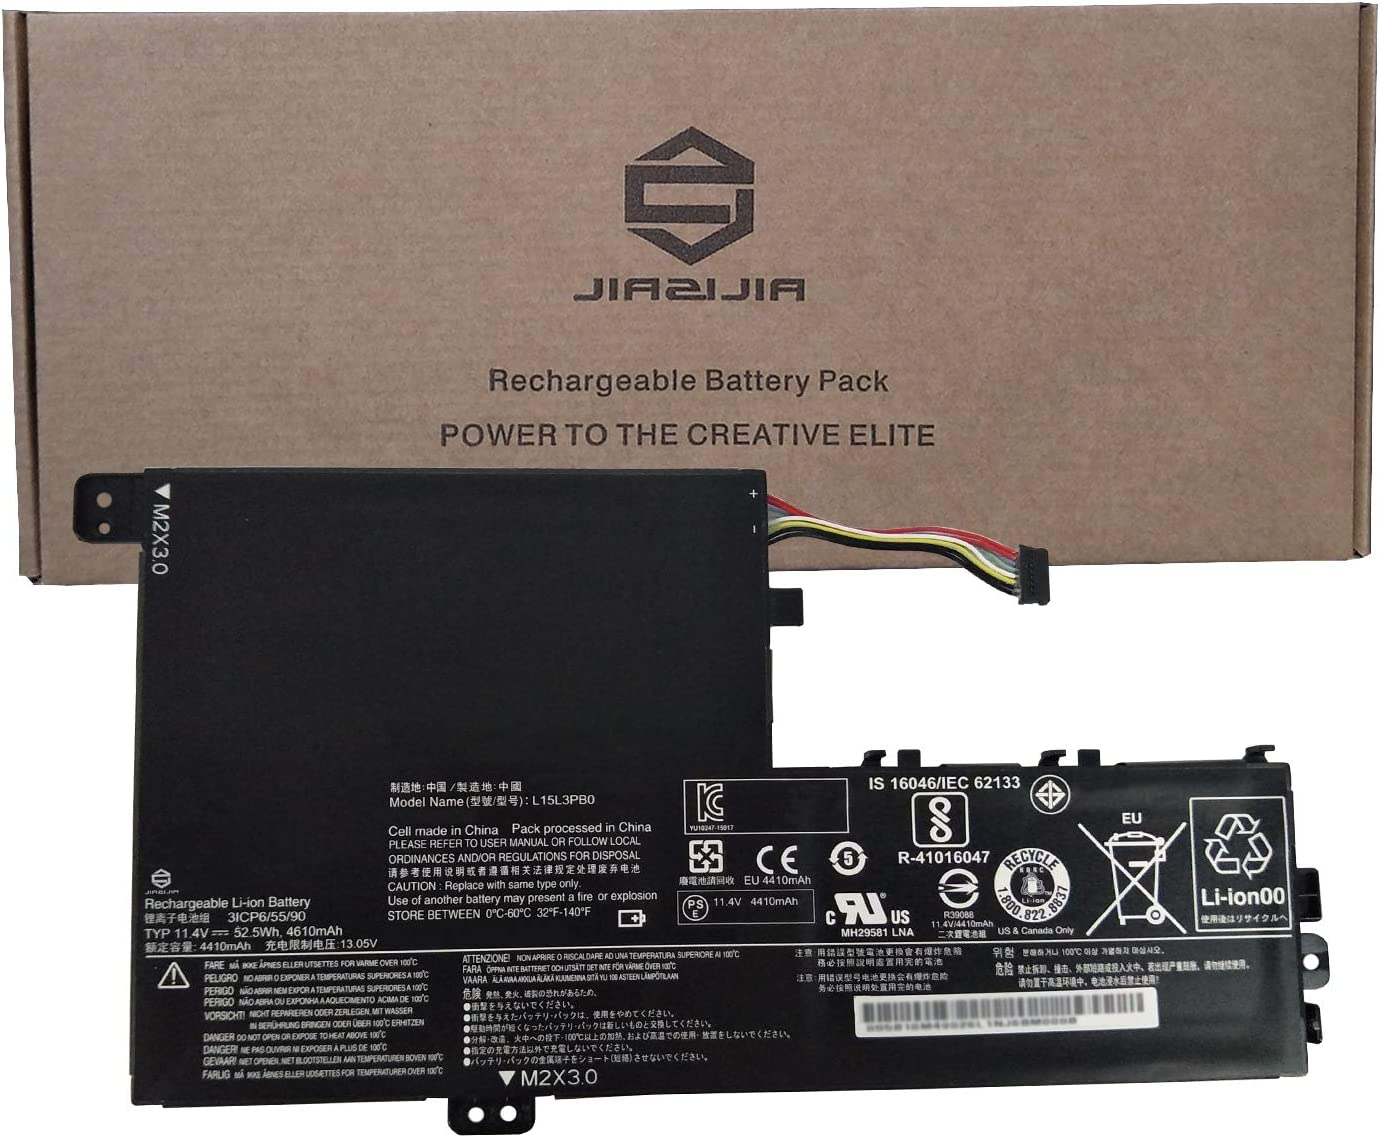 JIAZIJIA L15L3PB0 Laptop Battery Replacement for Lenovo Flex 5 1470 1570 IdeaPad 320S-14IKB 320S-15ABR 320S-15AST 320S-15IKB 320S-15ISK 520S-14IKB ...